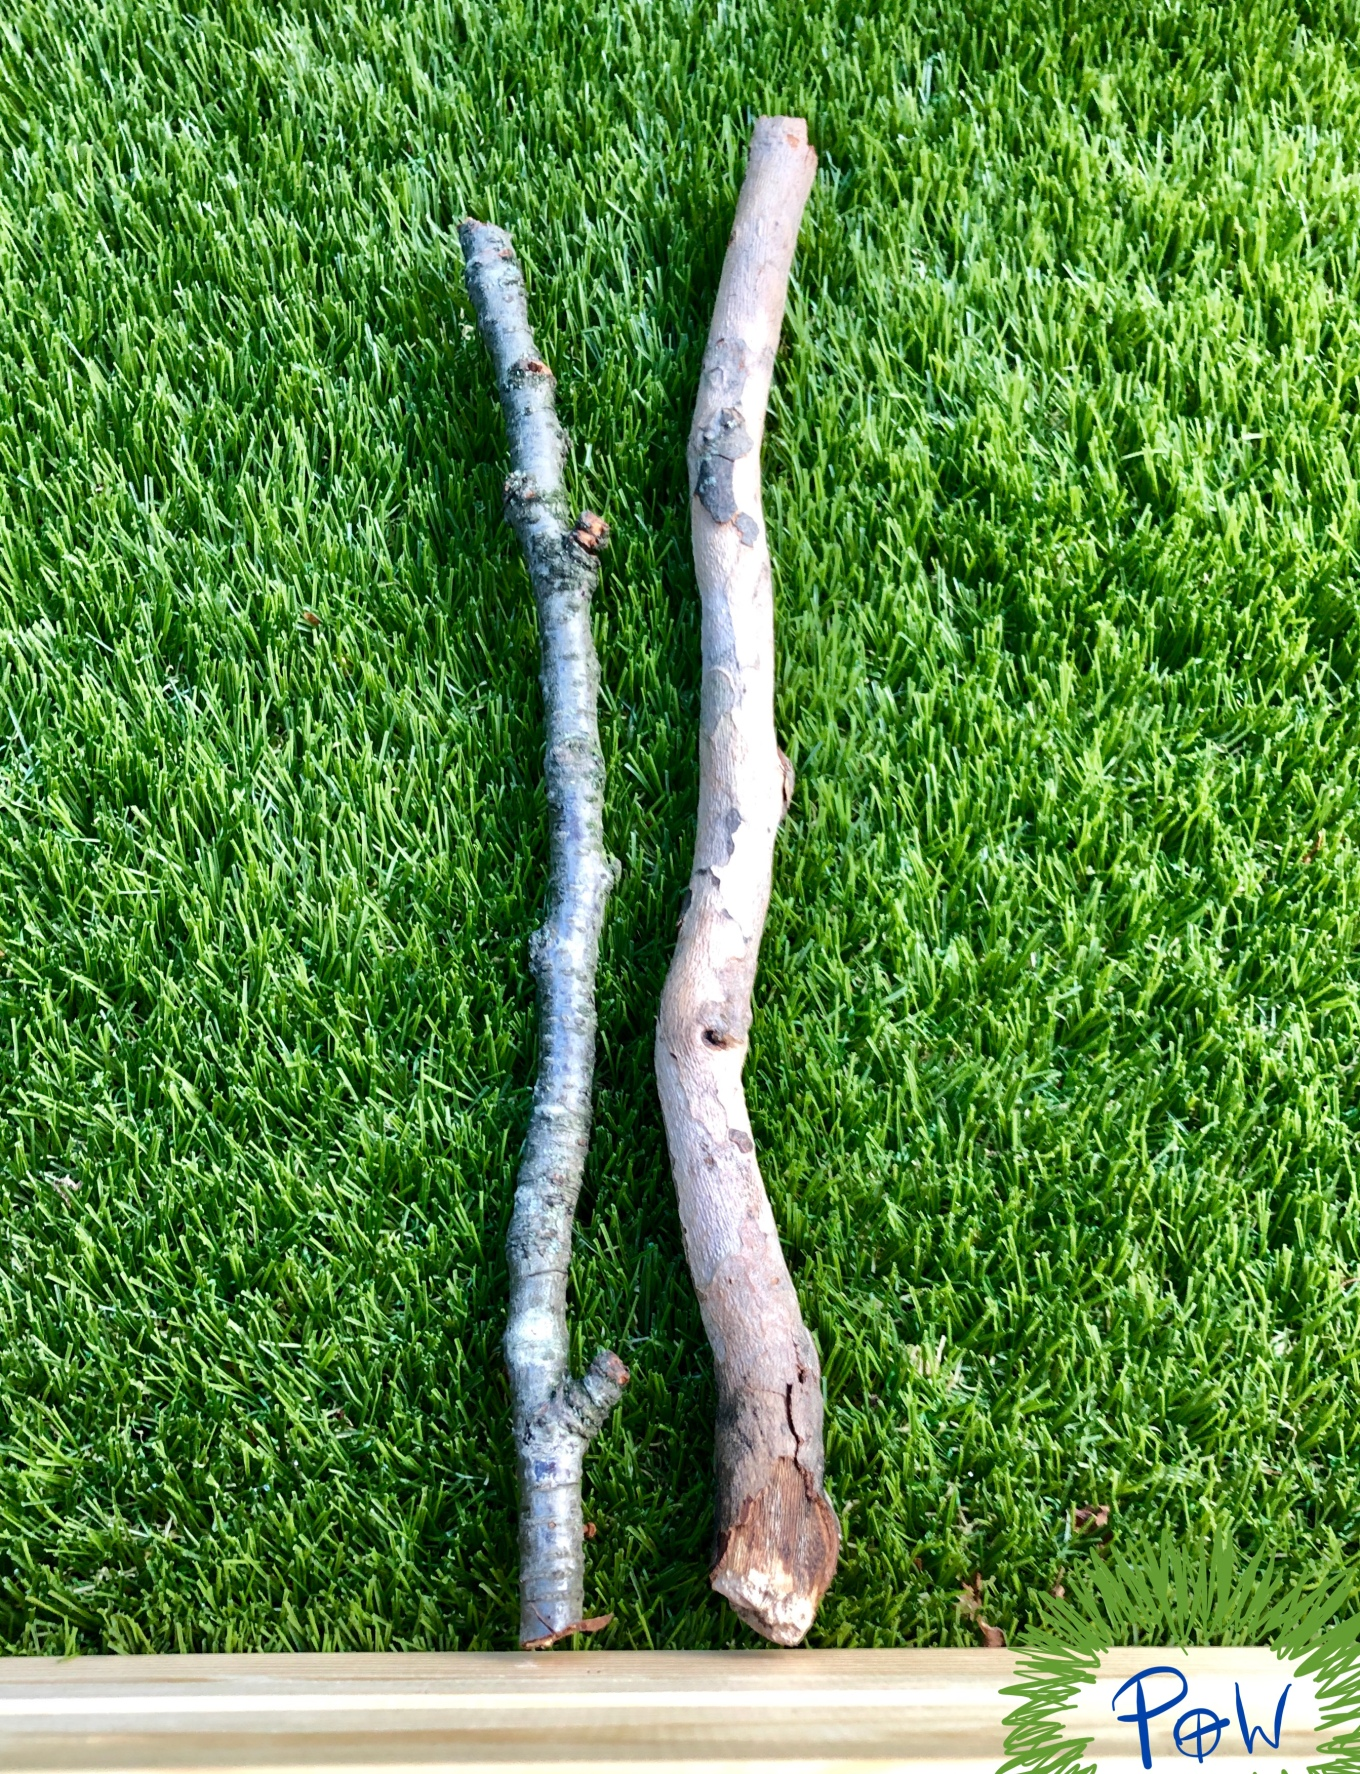 comparing longest and shortest -length of sticks